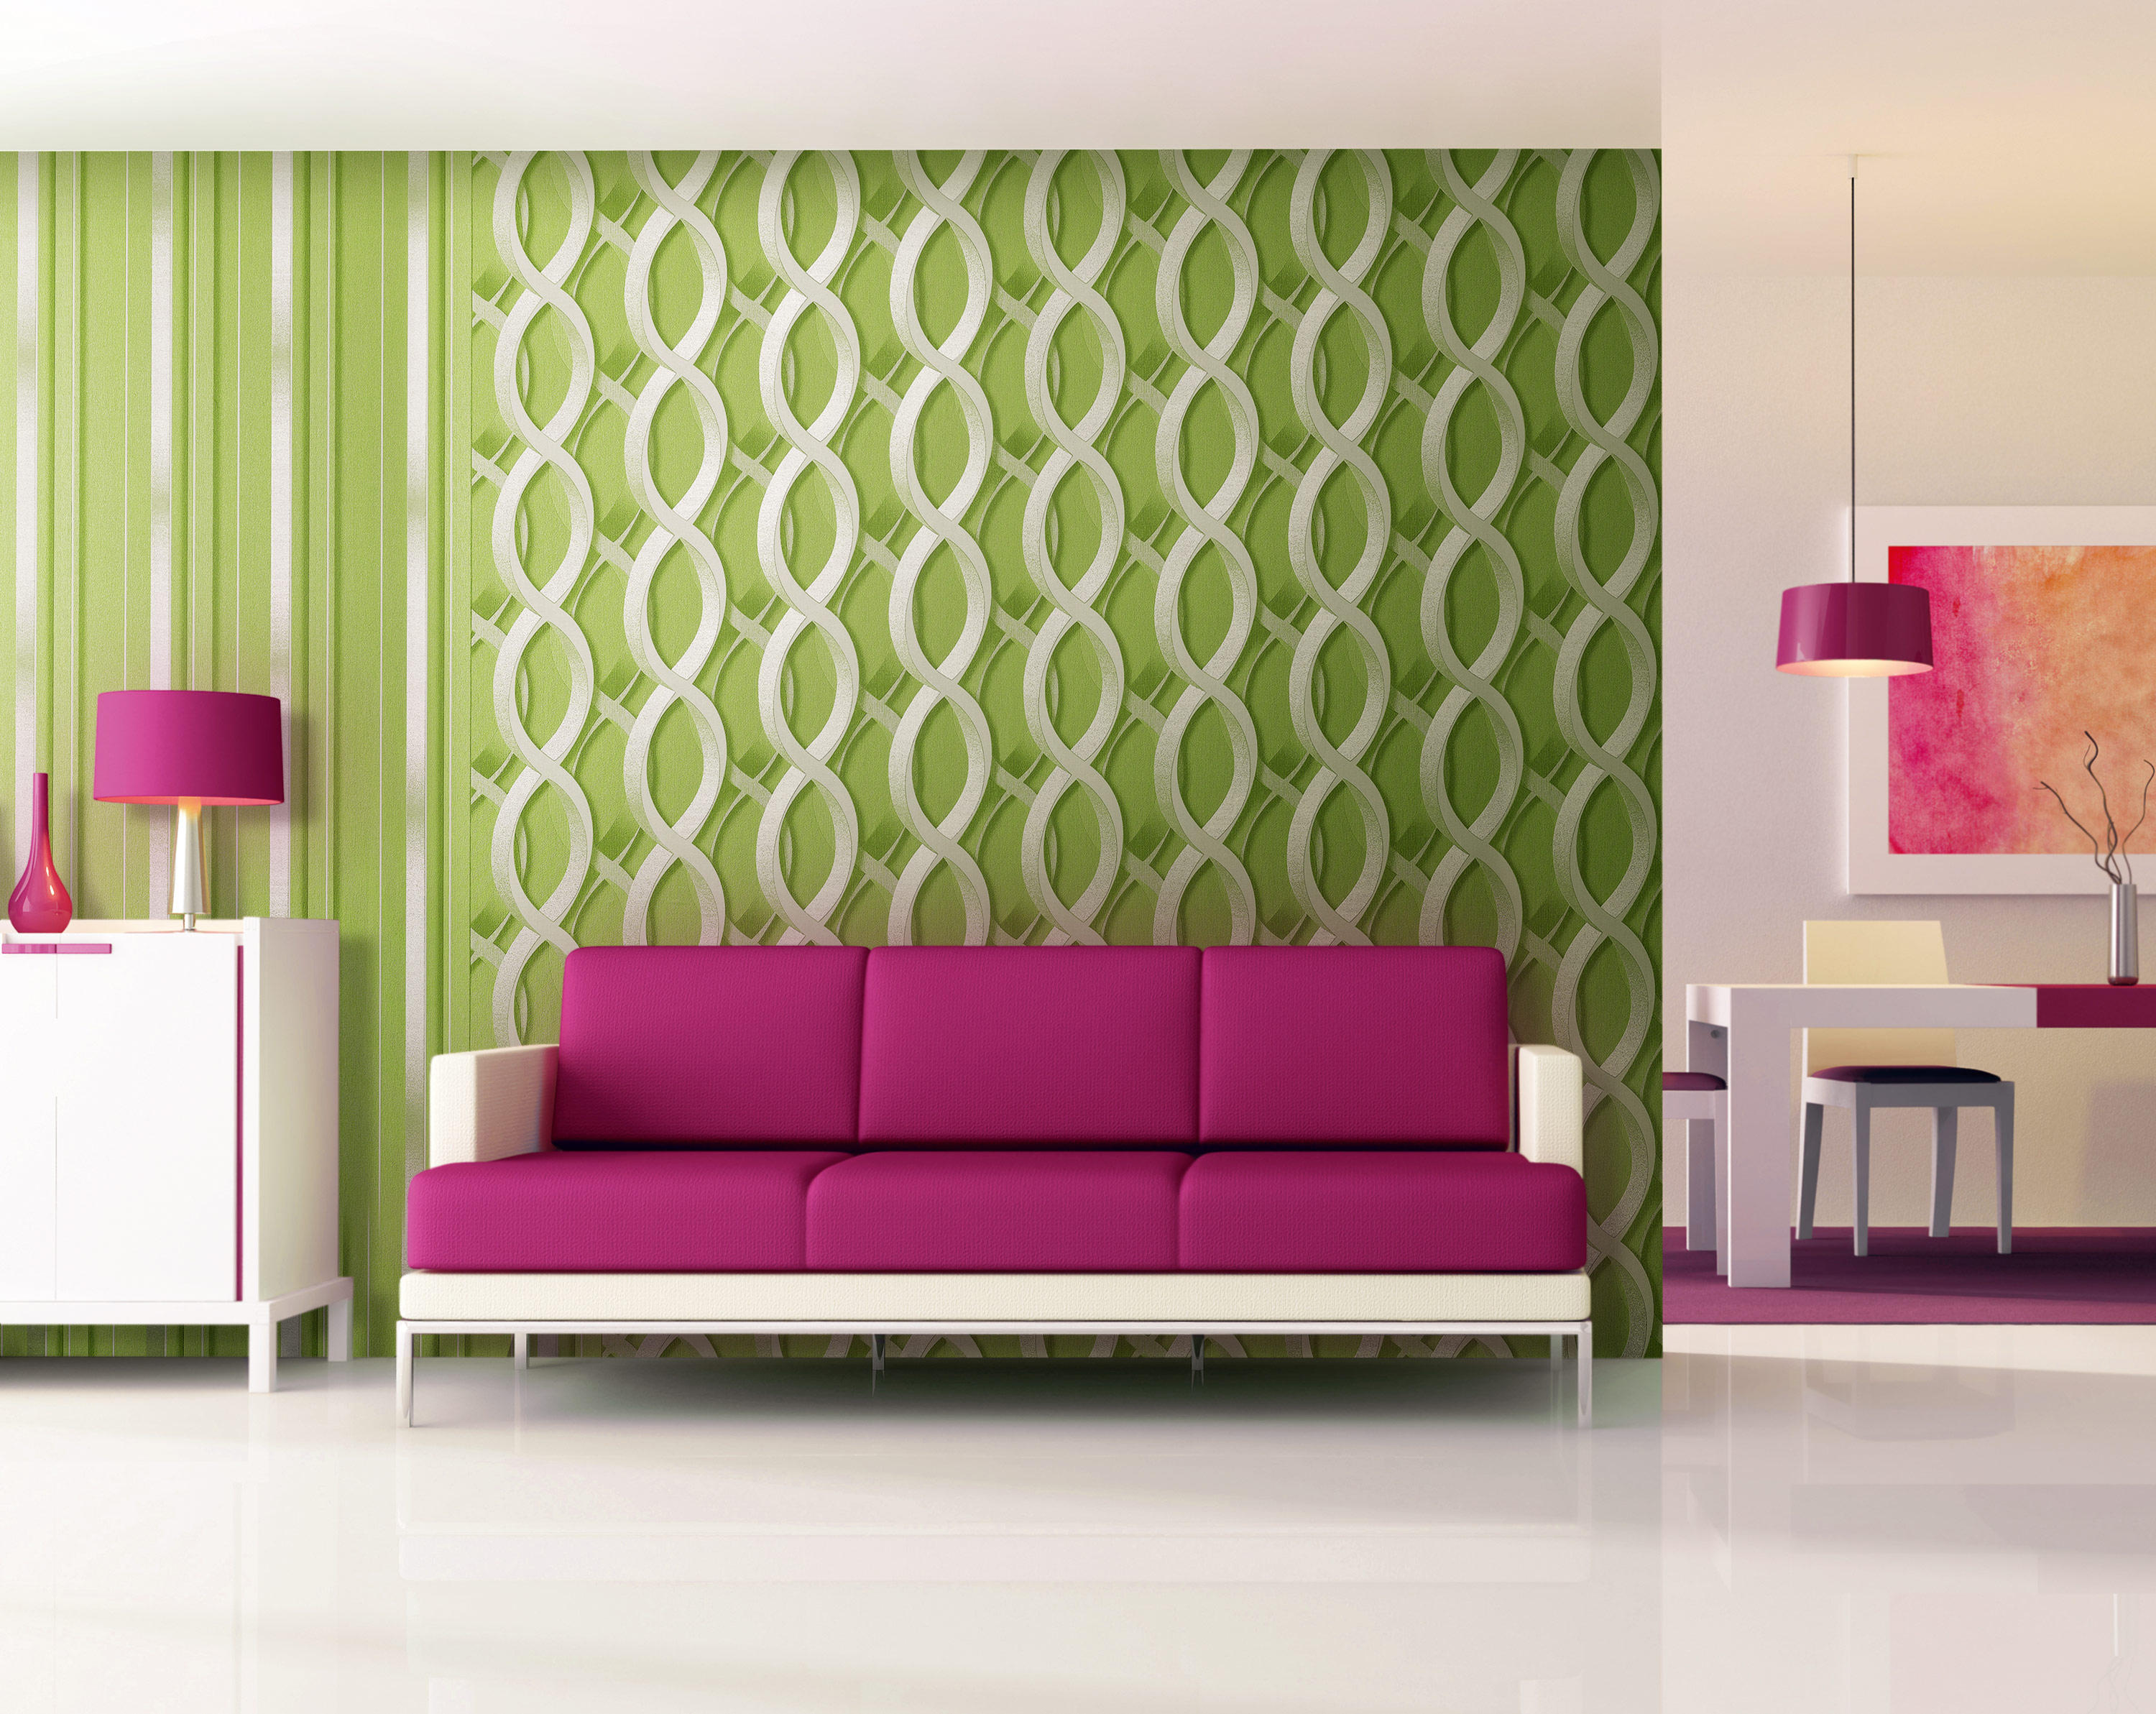 ... Versailles   3D Baroque Wallpaper EDEM 696 92 By E Delux ...